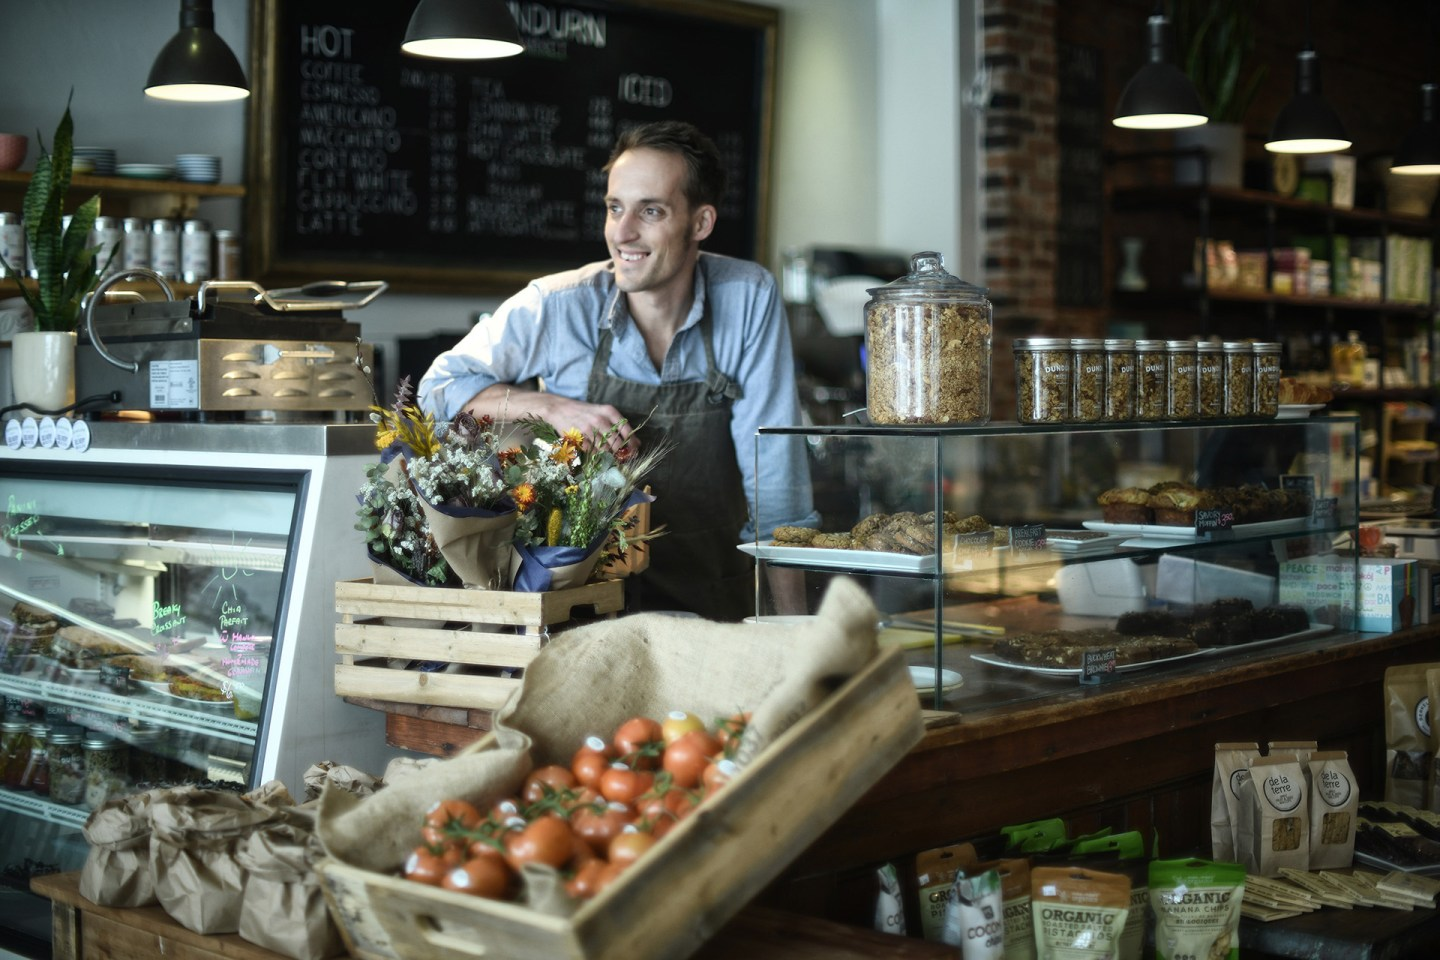 DUNDURN MARKET:  THE ARCHETYPAL (ECO)GROCER